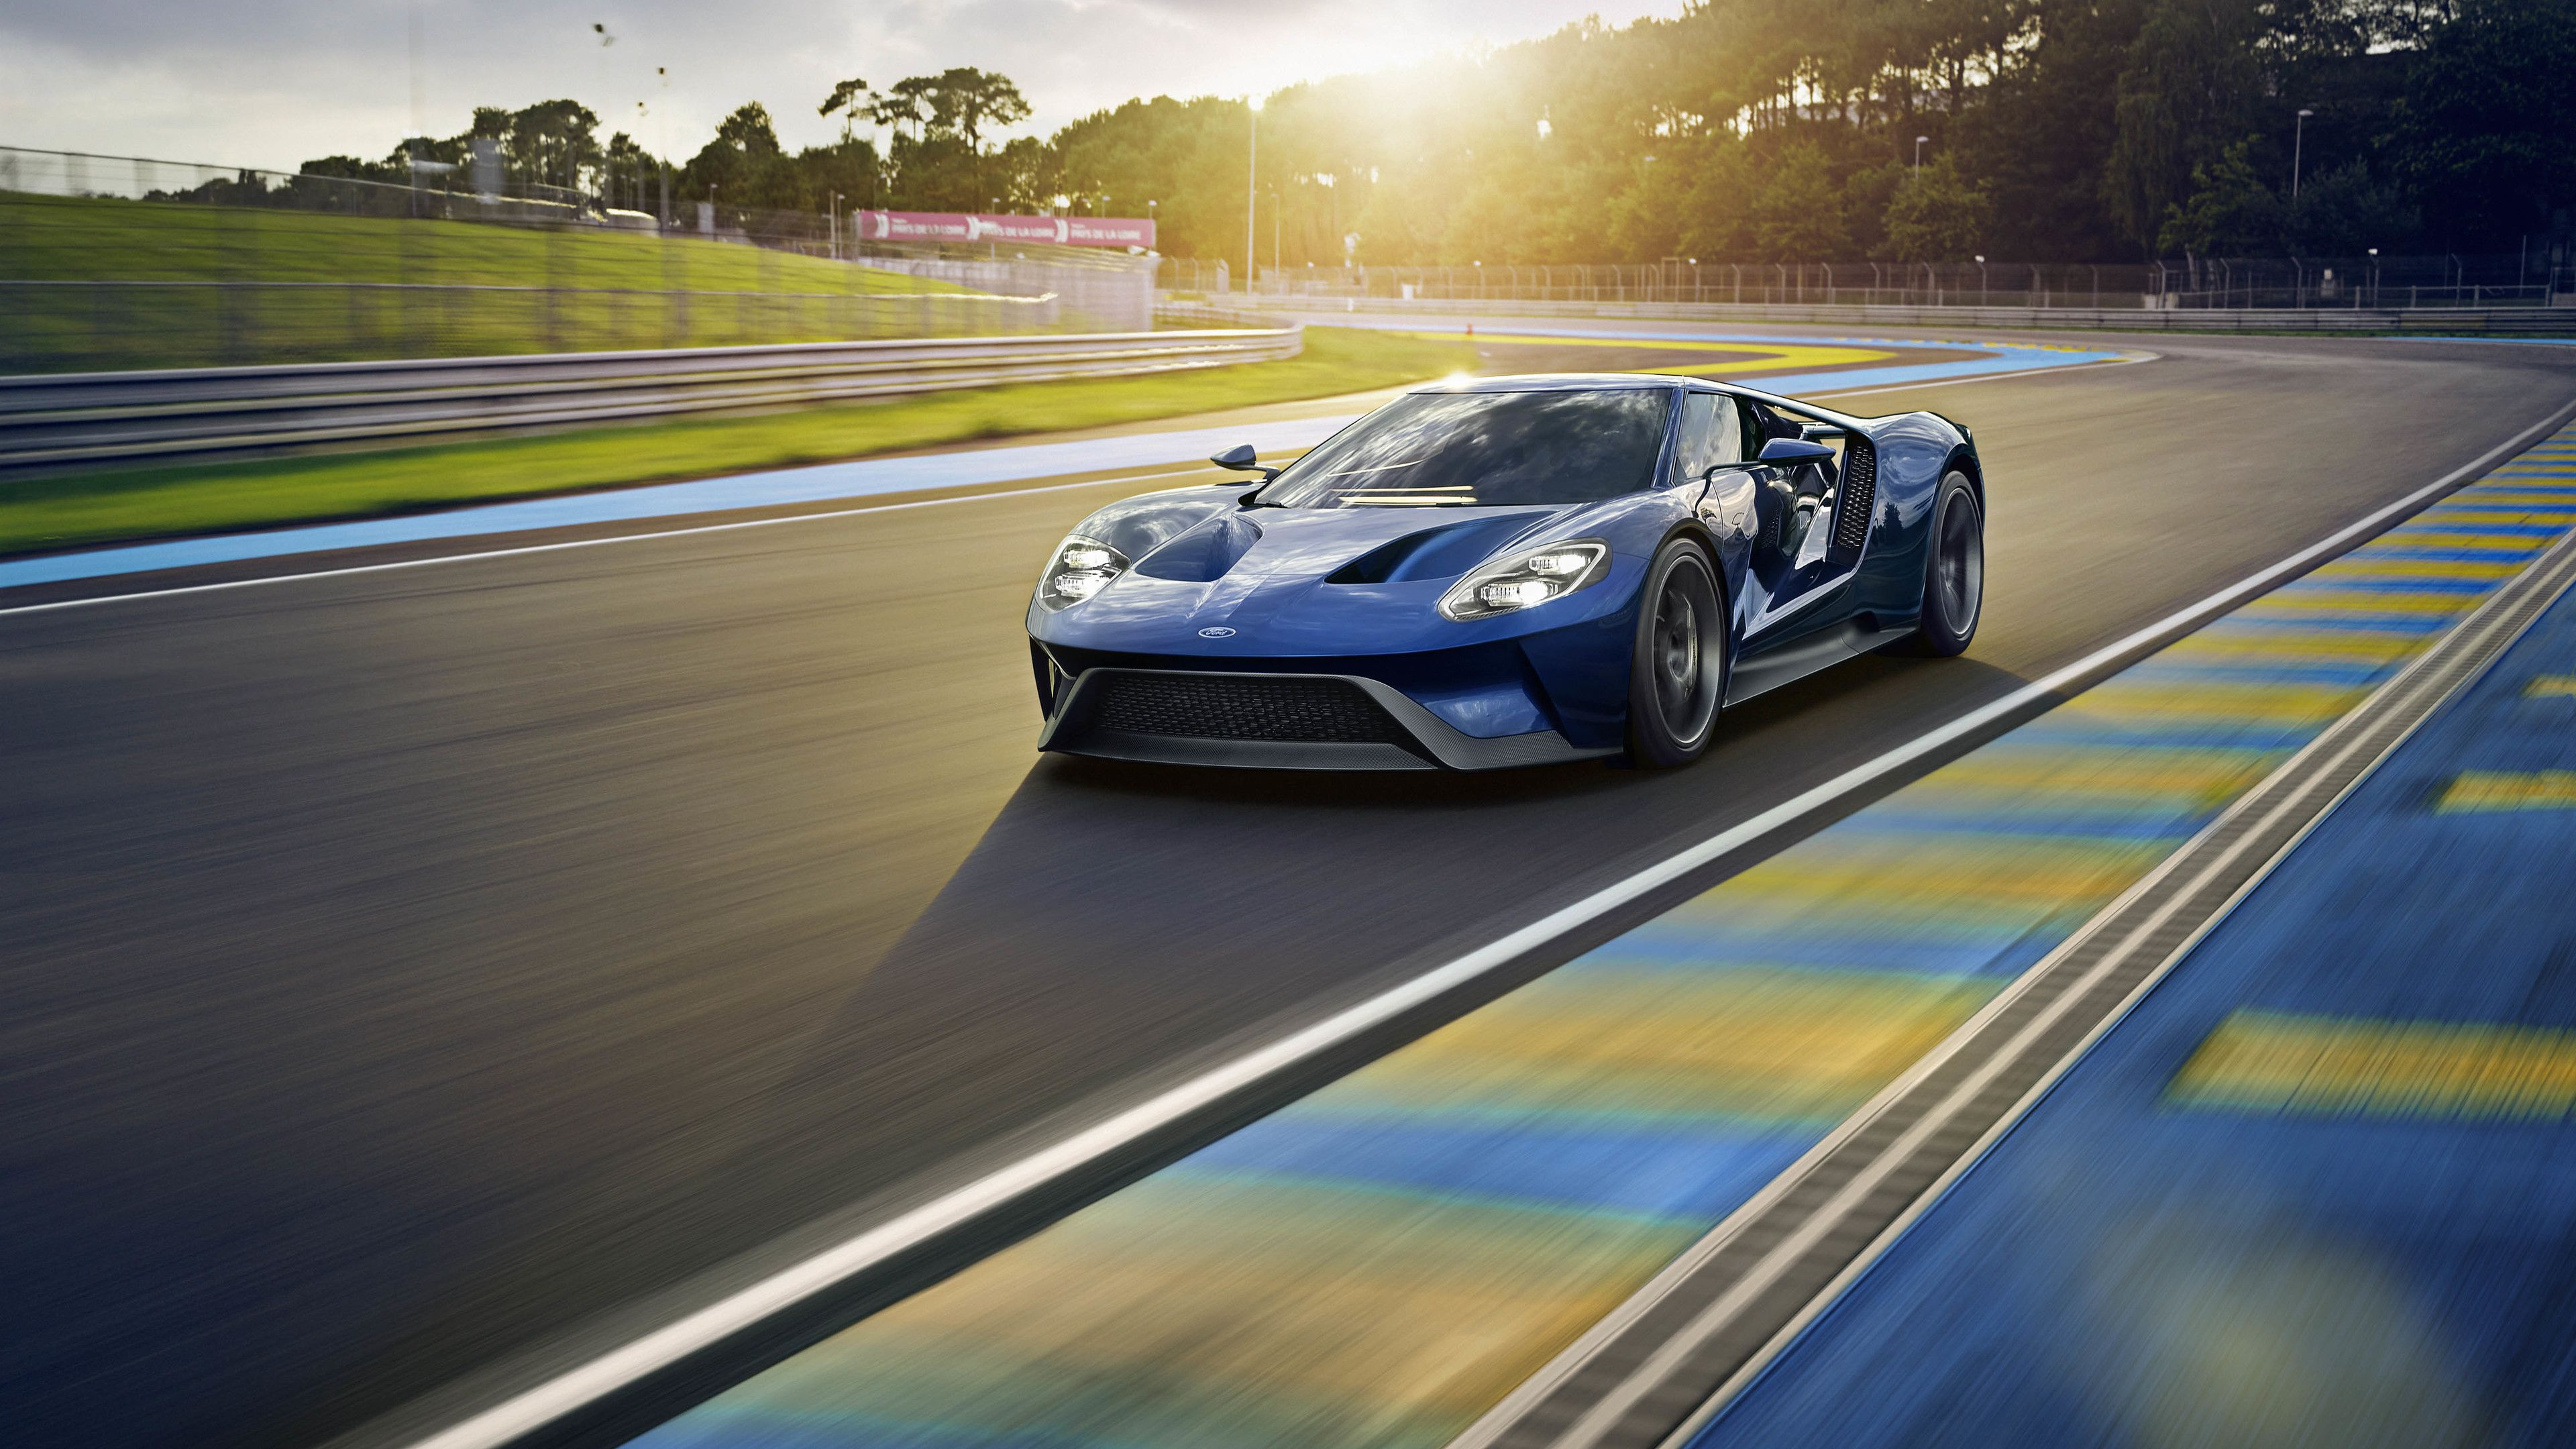 Ford Gt Front Hd Wallpapers Ford Wallpapers Ford Gt Wallpapers